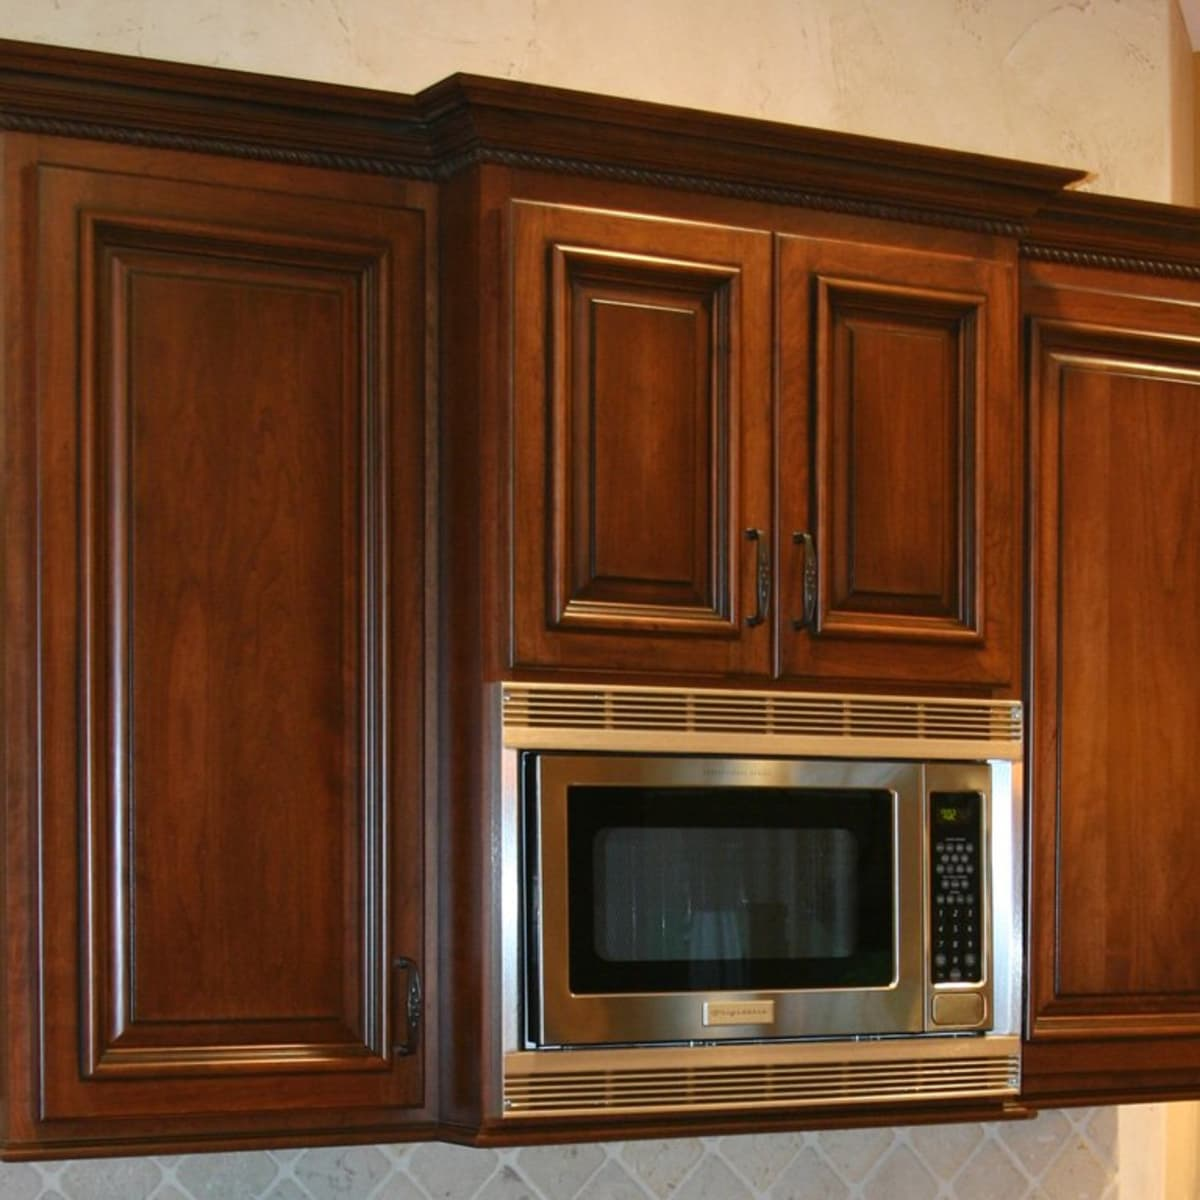 Where To Put The Microwave In The Kitchen 7 Design Ideas Dengarden